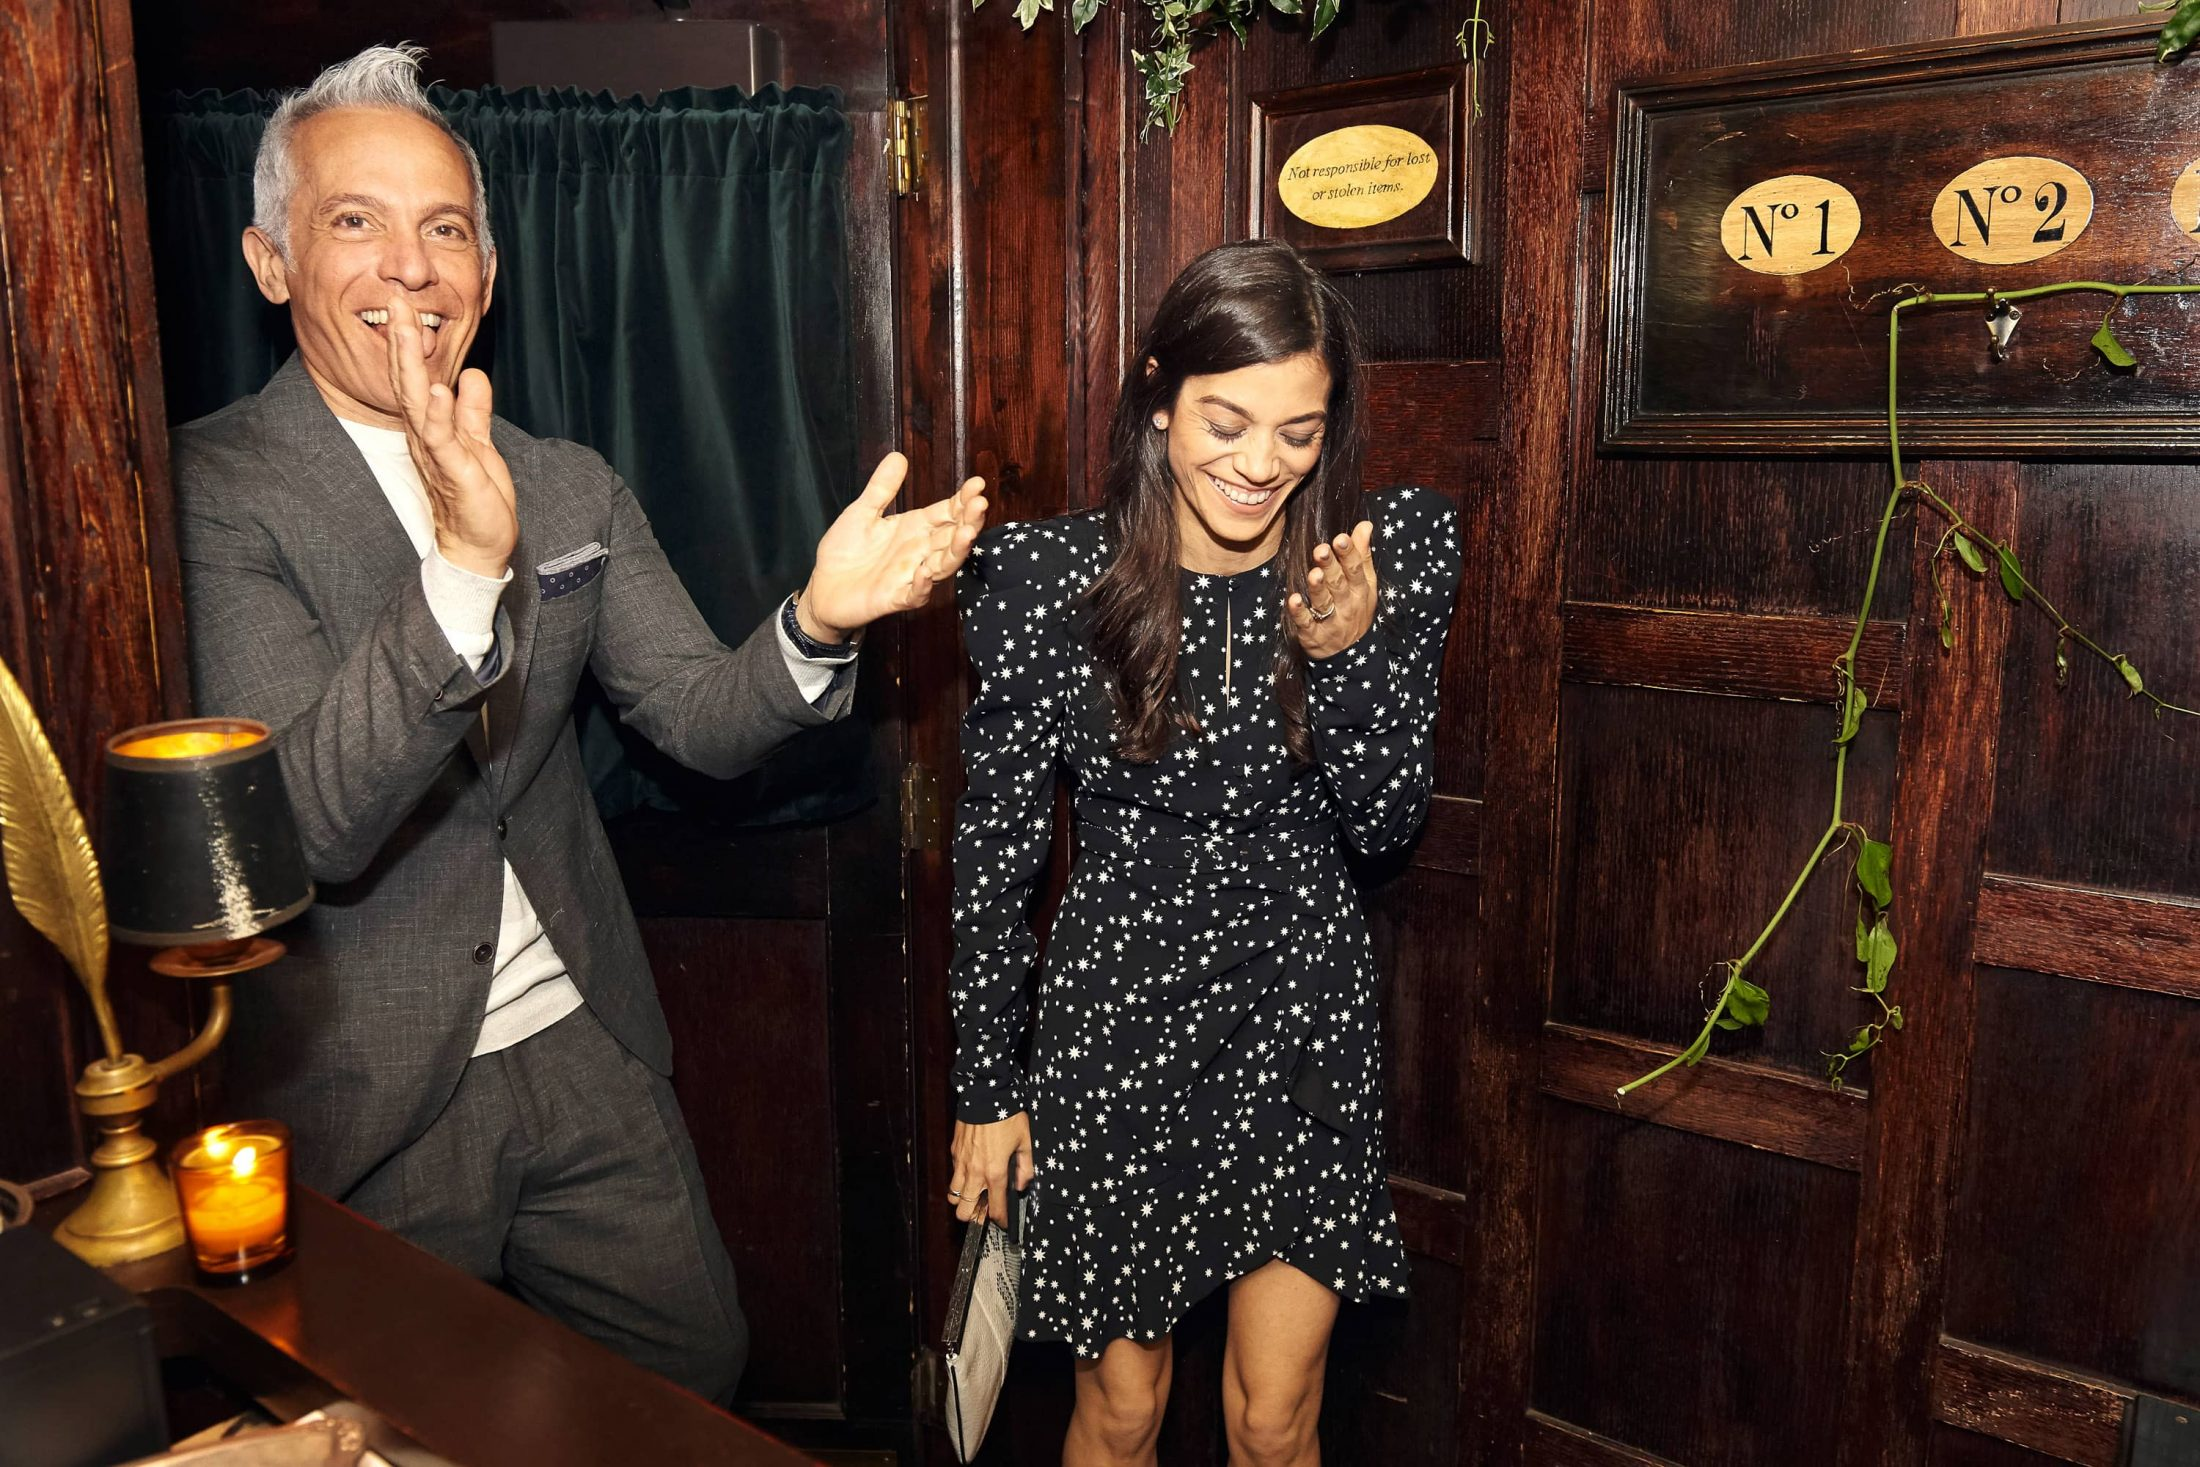 Surprised birthday girl at this 40th surprise birthday party at Beatrice Inn in West Village | Photo by Darren Ornitz